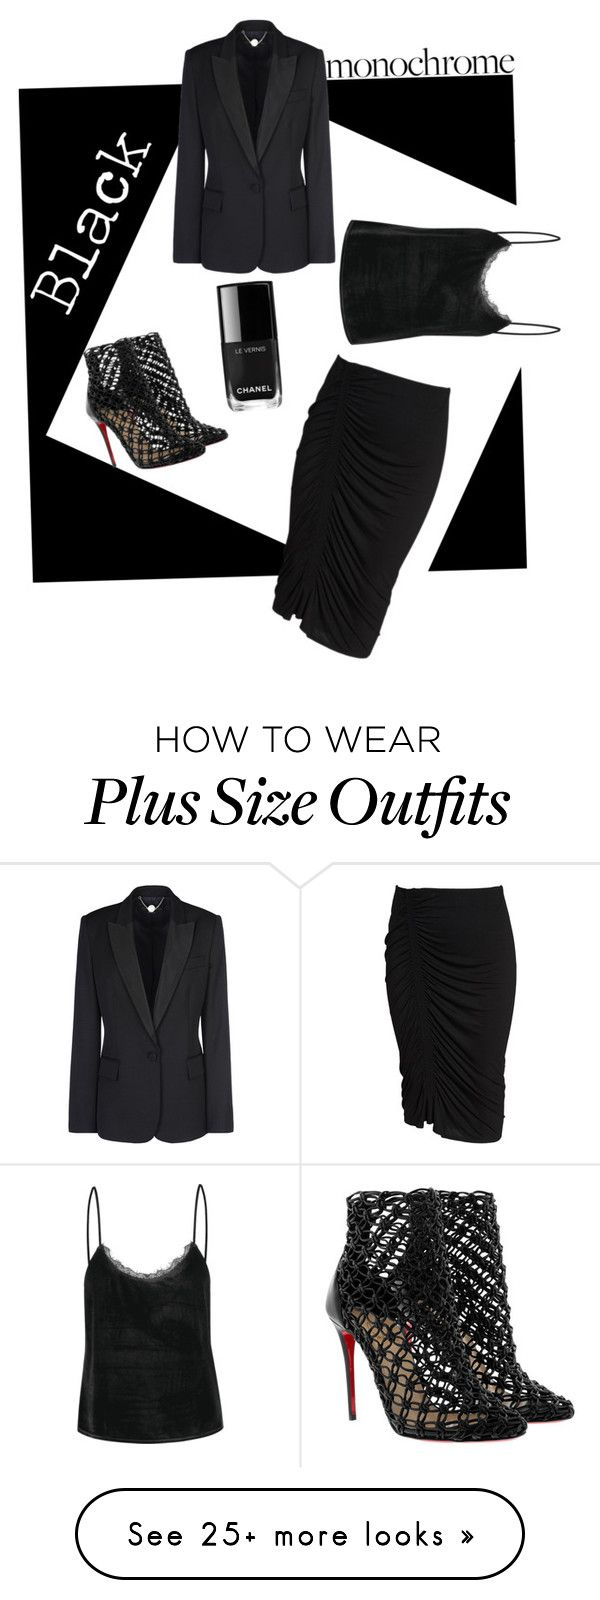 """""""Negative"""" by naomi-mann on Polyvore featuring STELLA McCARTNEY, Vince Camuto, Christian Louboutin and allblackoutfit"""